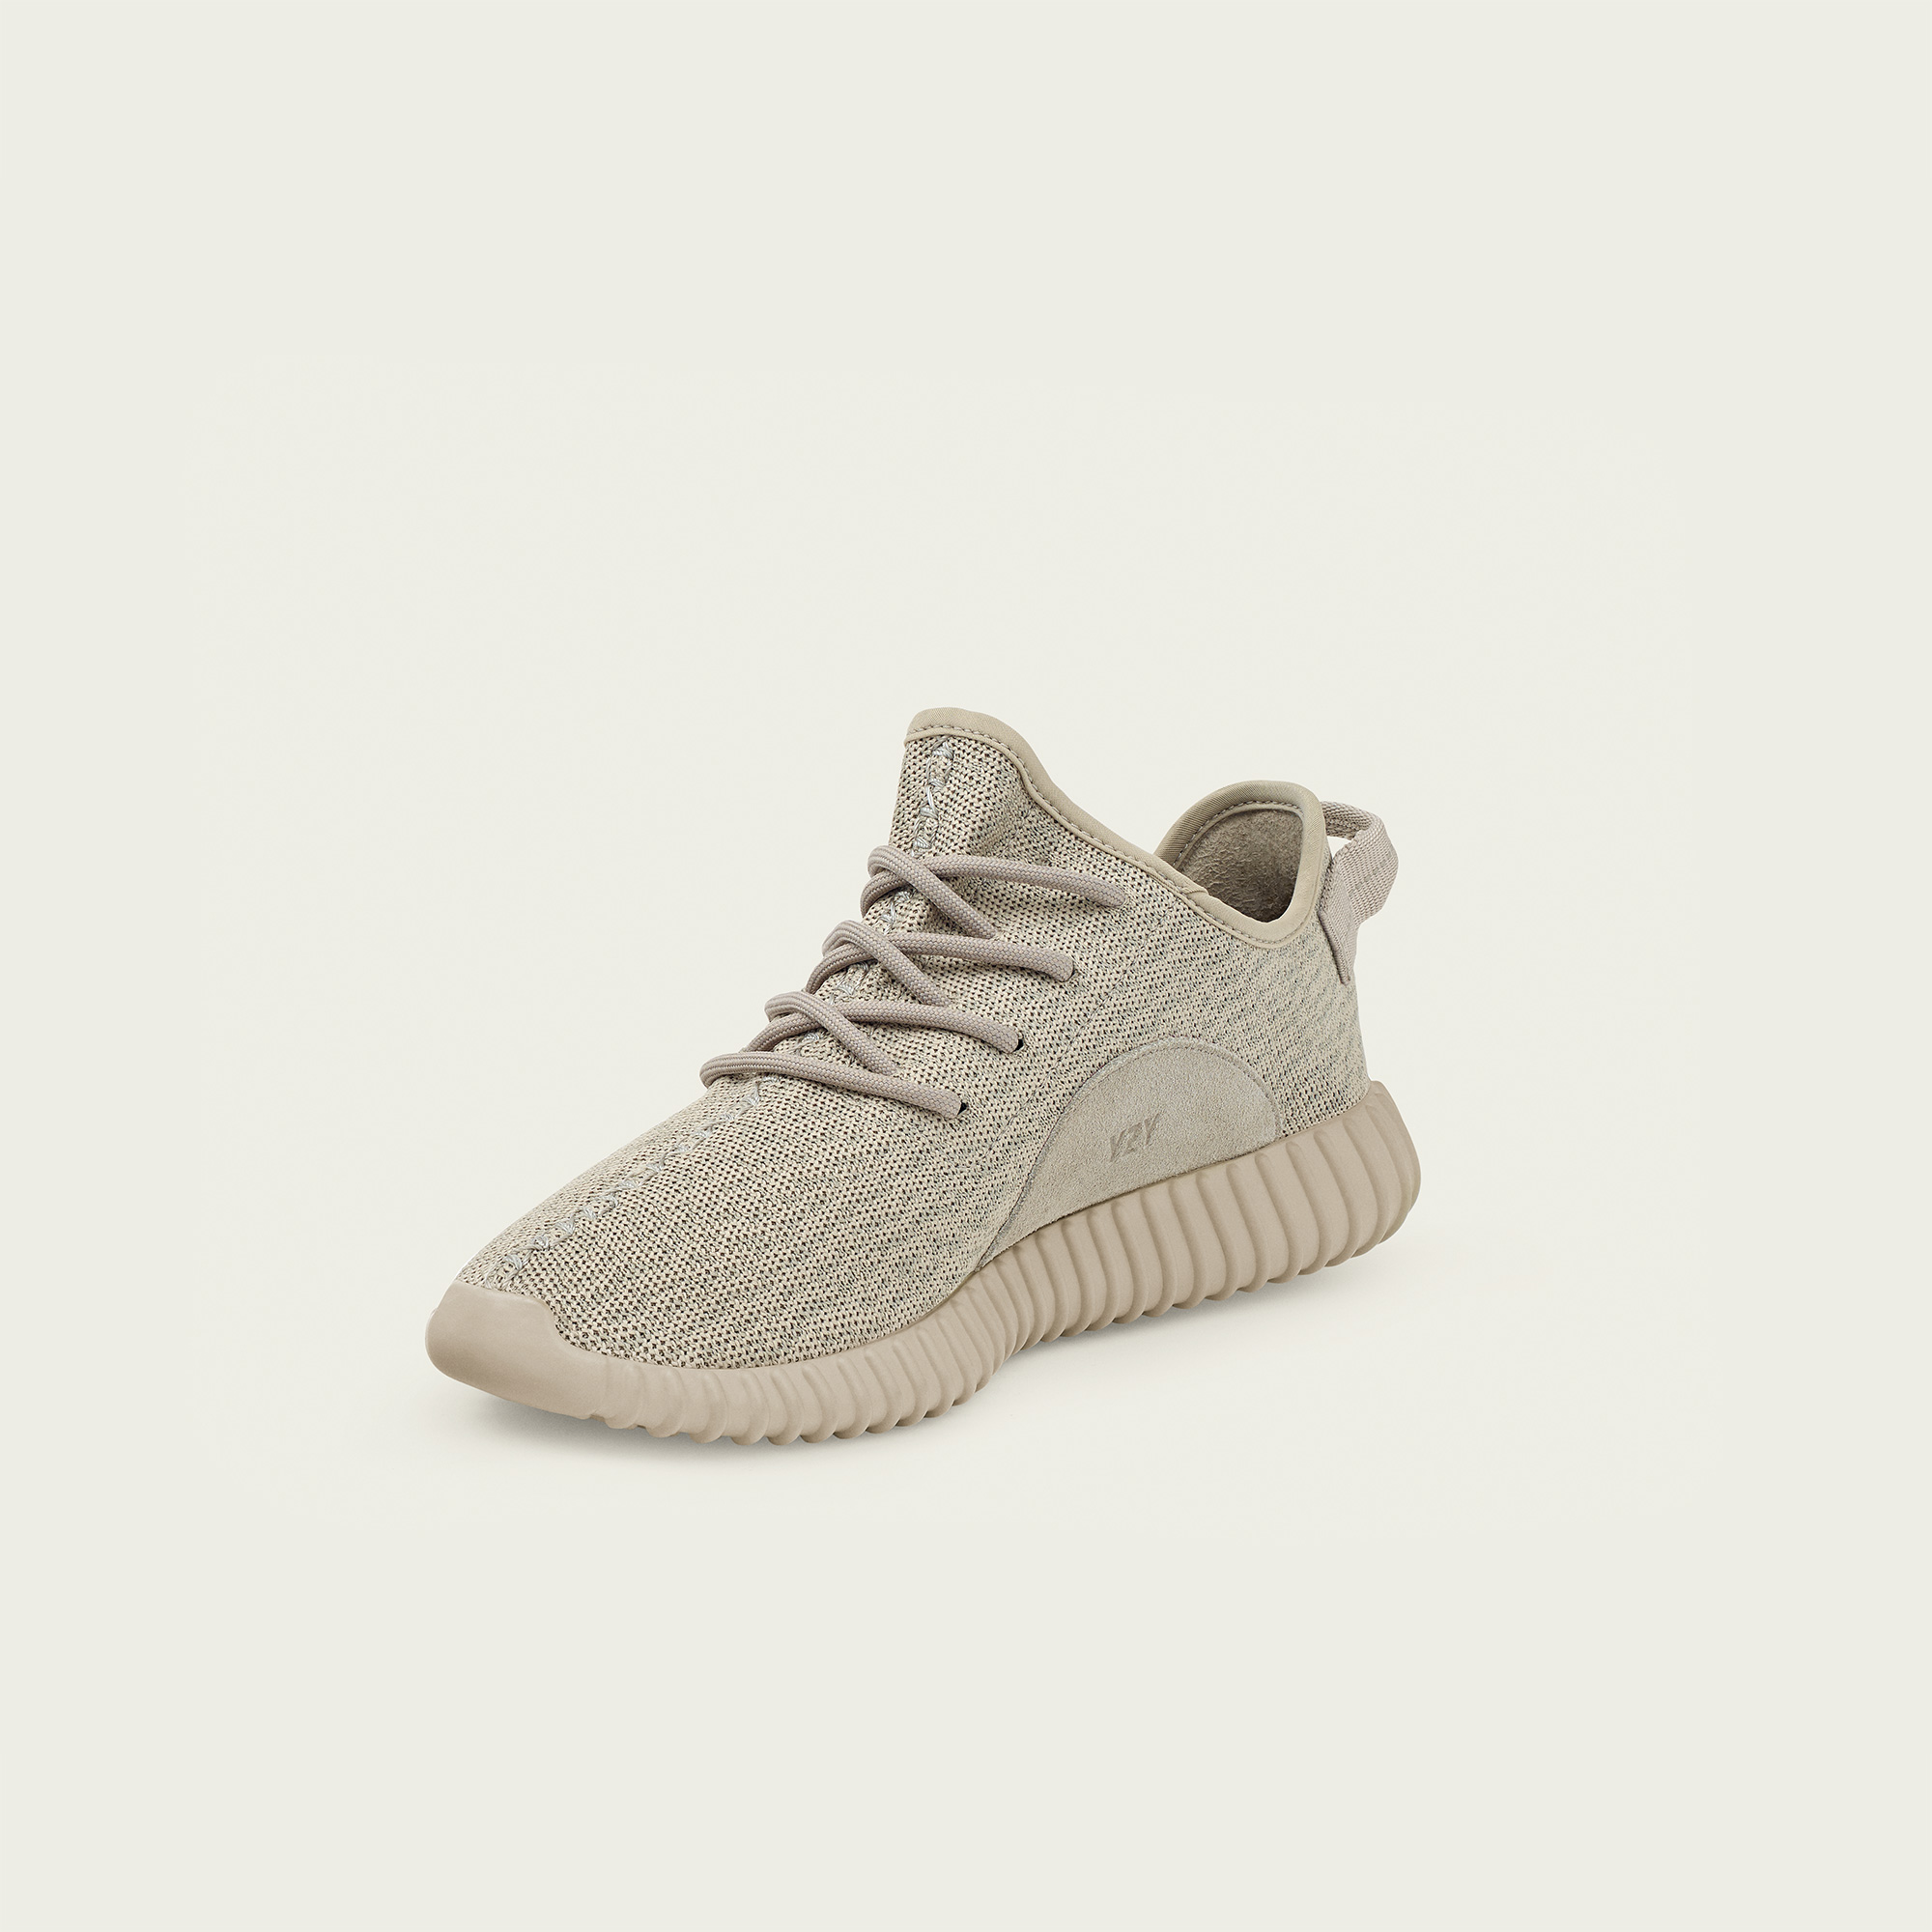 Yeezy Boost 350 v2 Copper BY 1605